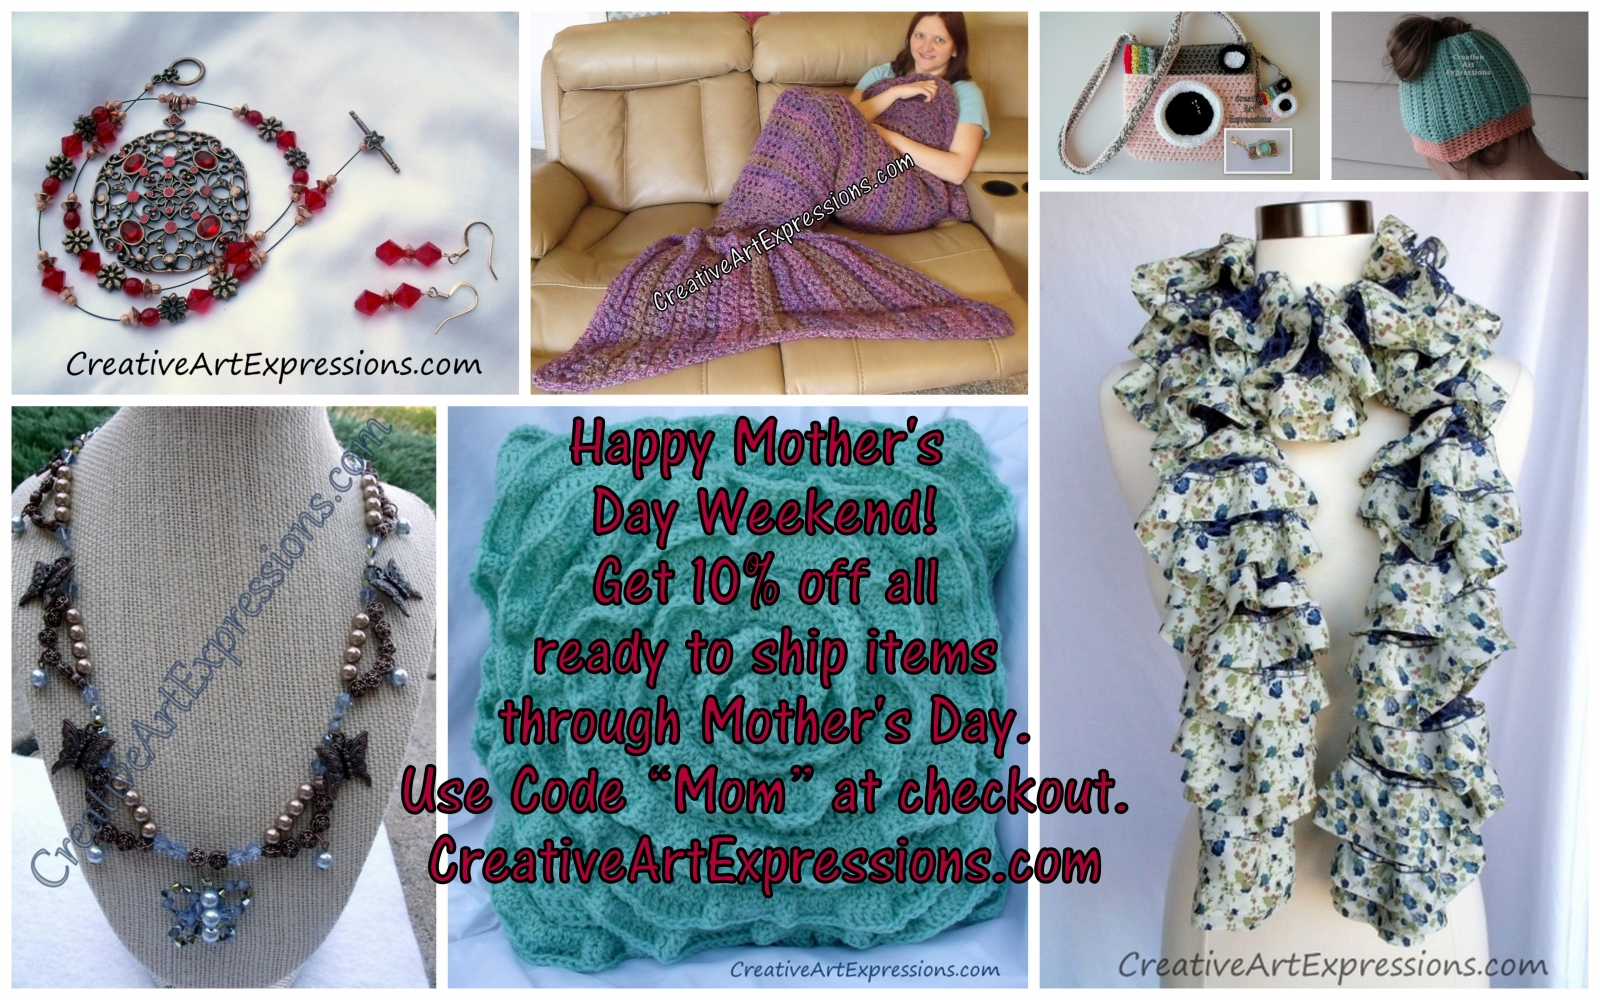 Happy Mother's Day Sale!